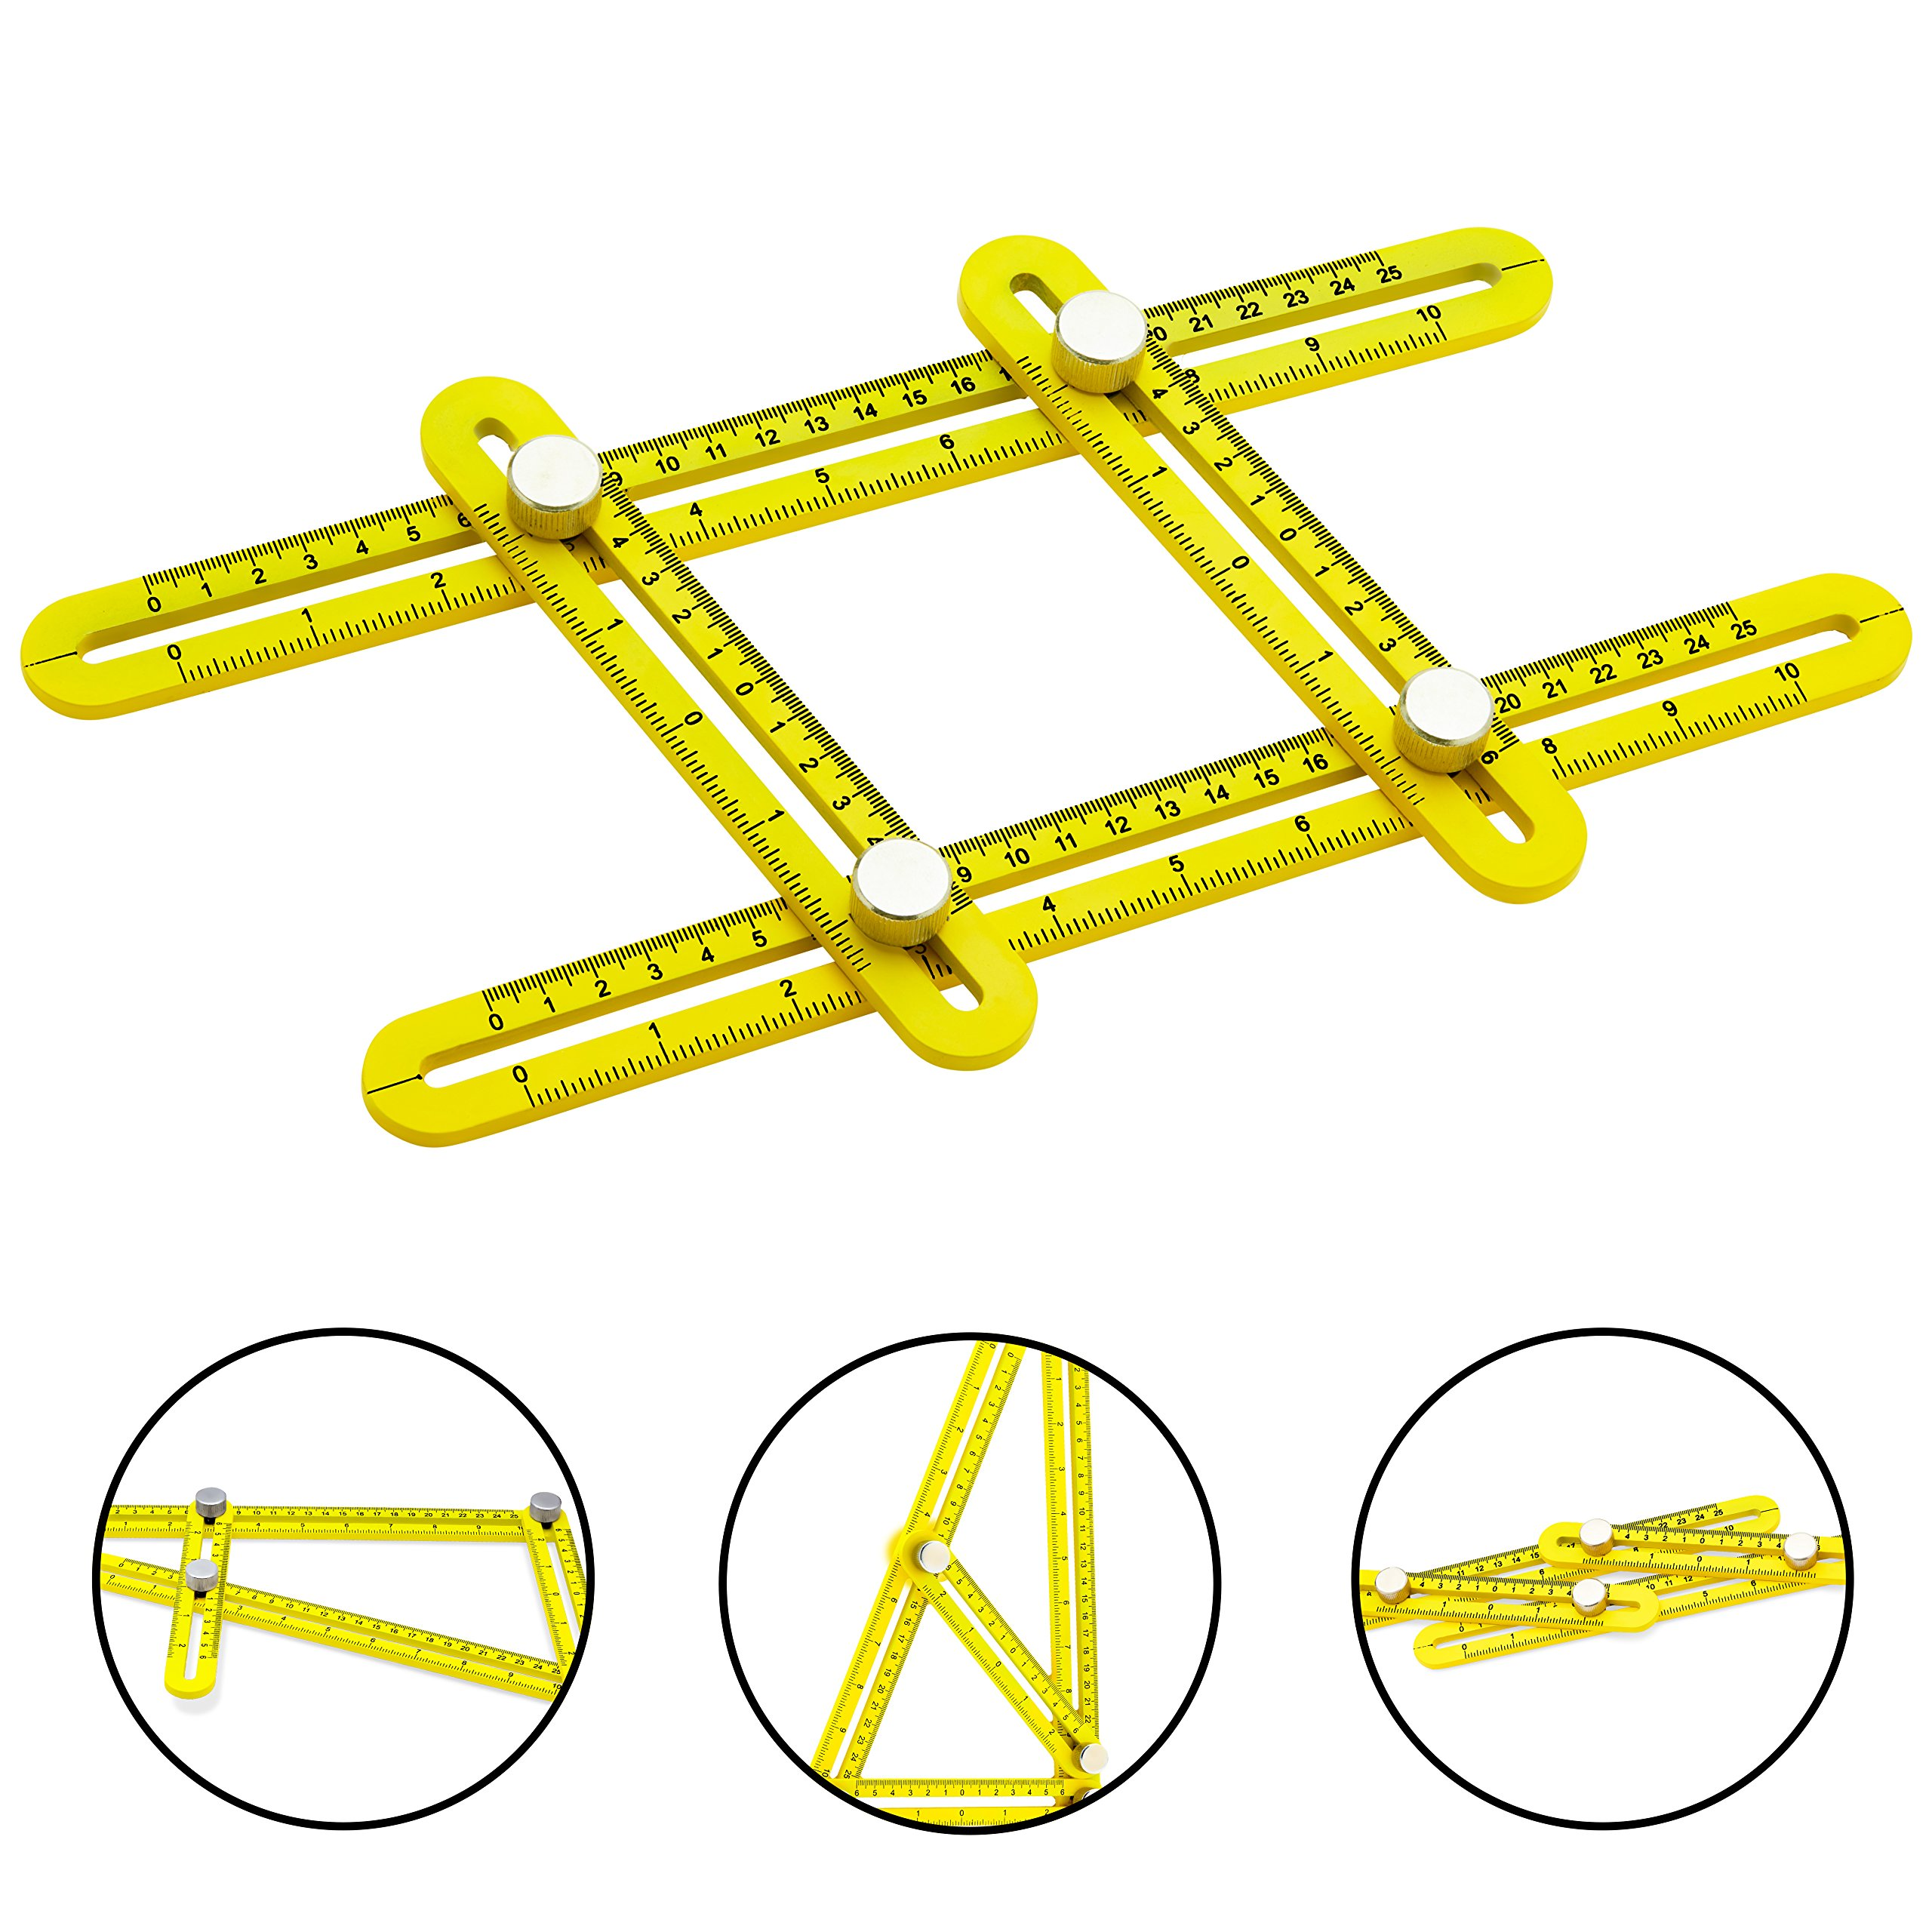 Universal Angularizer Ruler and Multi-Angle Measuring Tool in Yellow Metal - Template Tool Makes Great Gifts for Men Him Husband Dad Father DIY